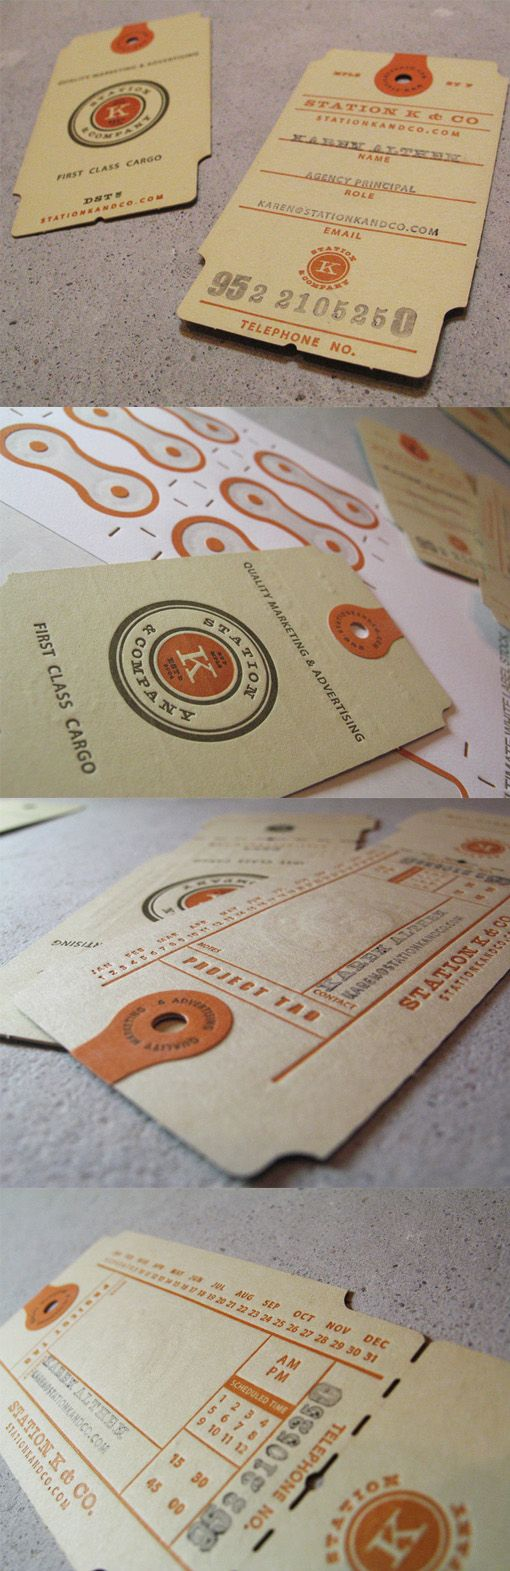 Vintage Style Custom Die Cut And Letterpress Luggage Tag Business Card Design